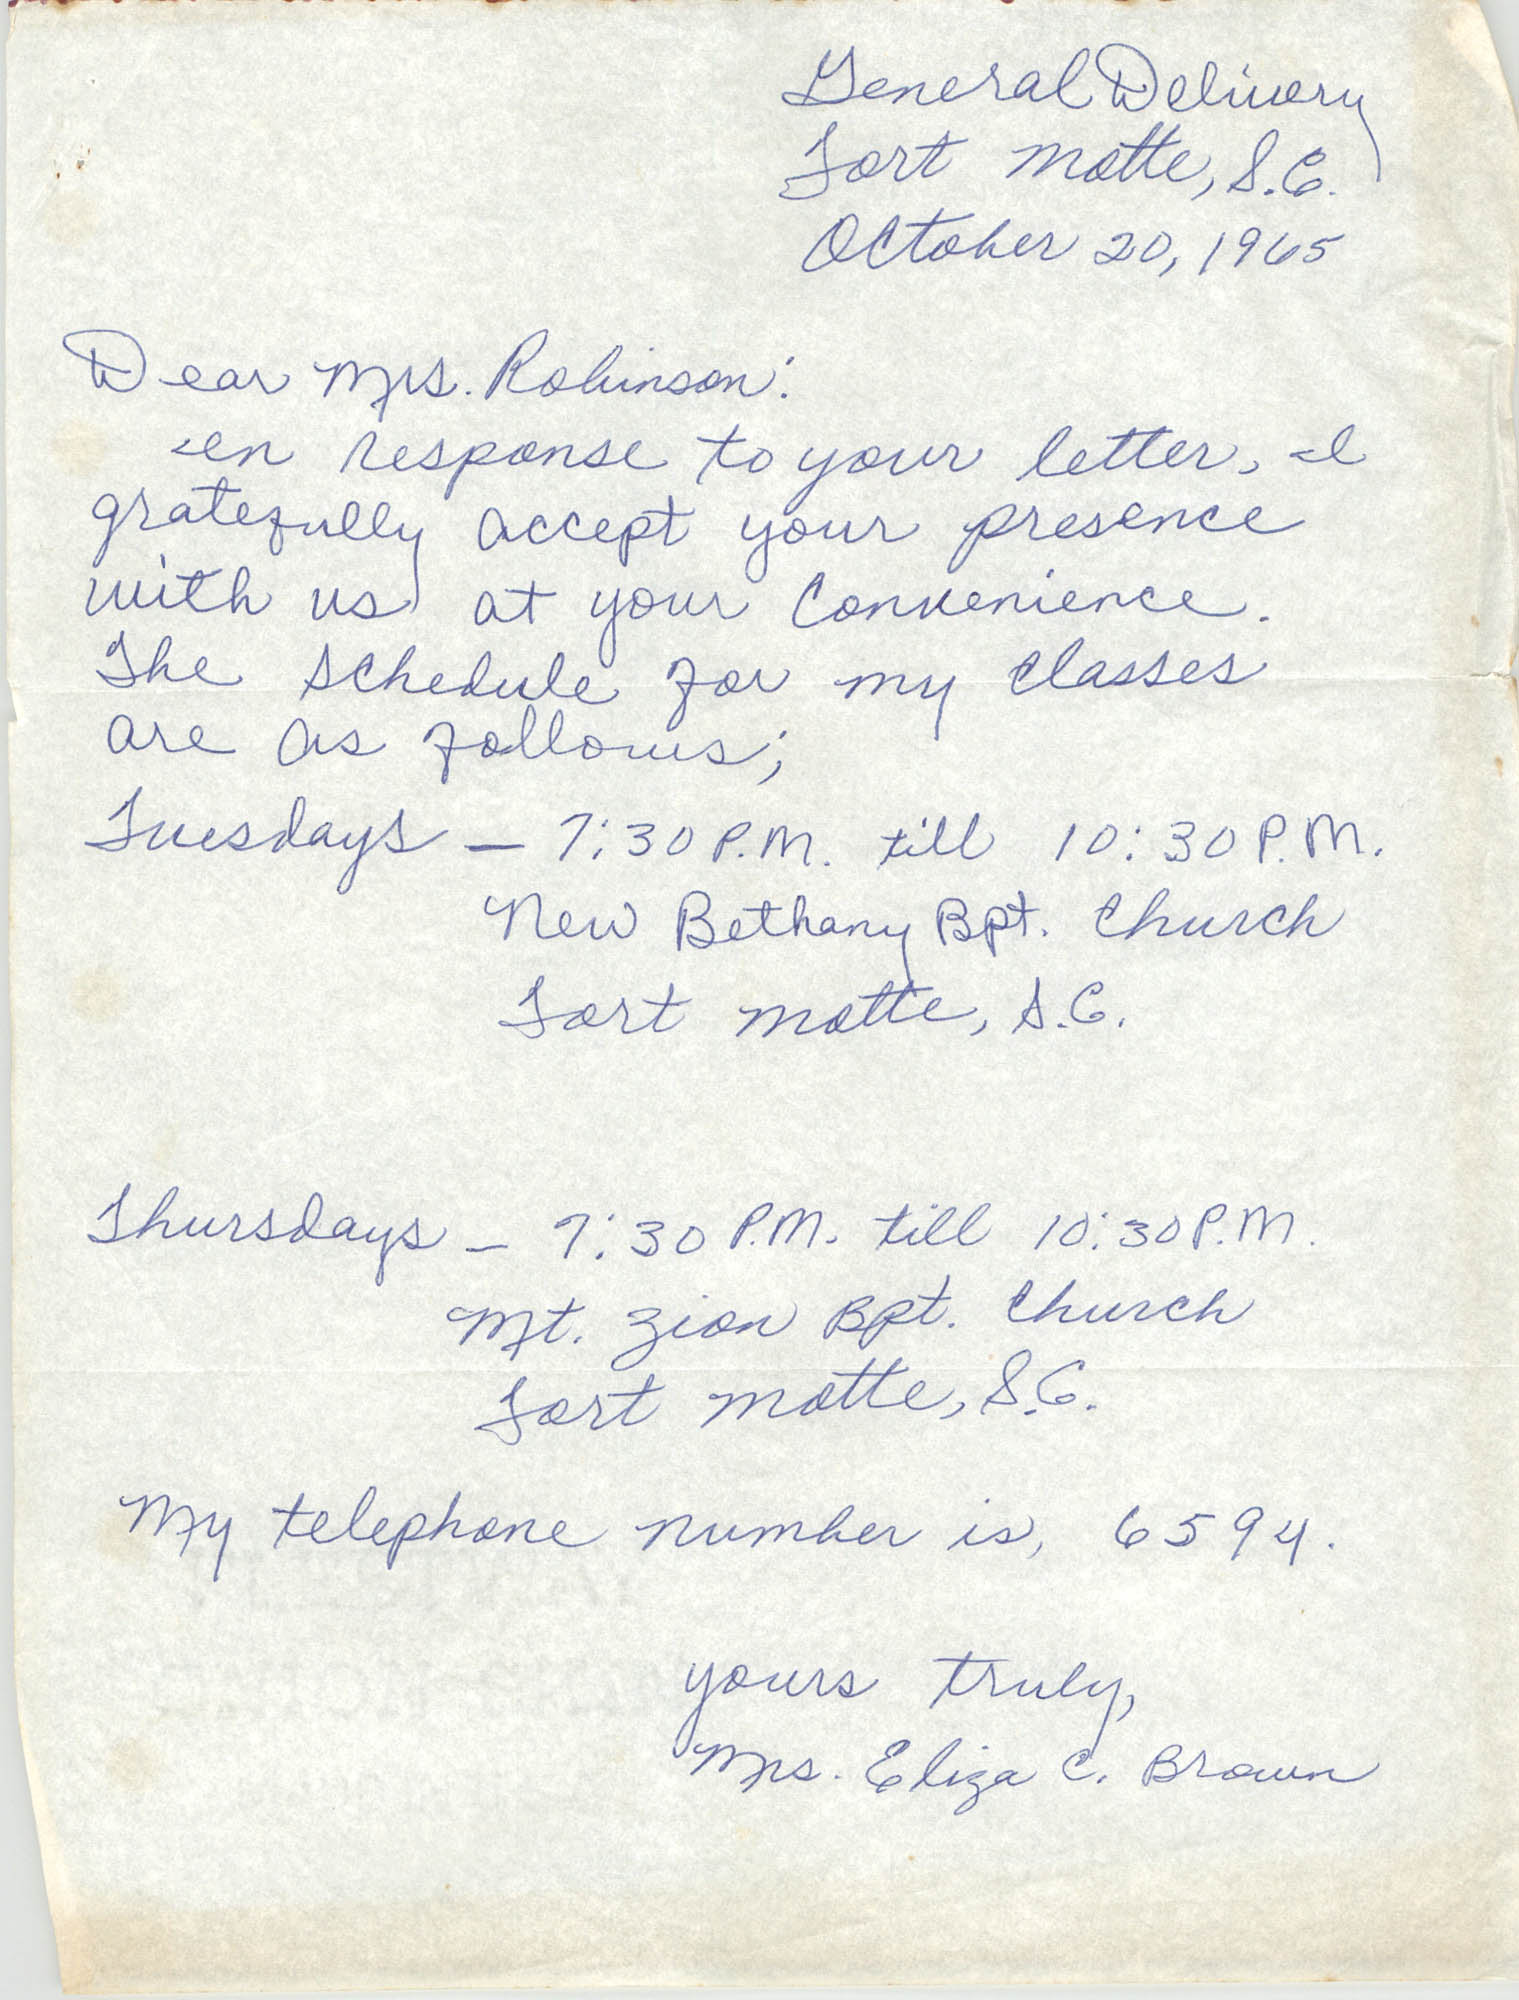 Letter from Eliza C. Brown to Bernice Robinson, October 20, 1965